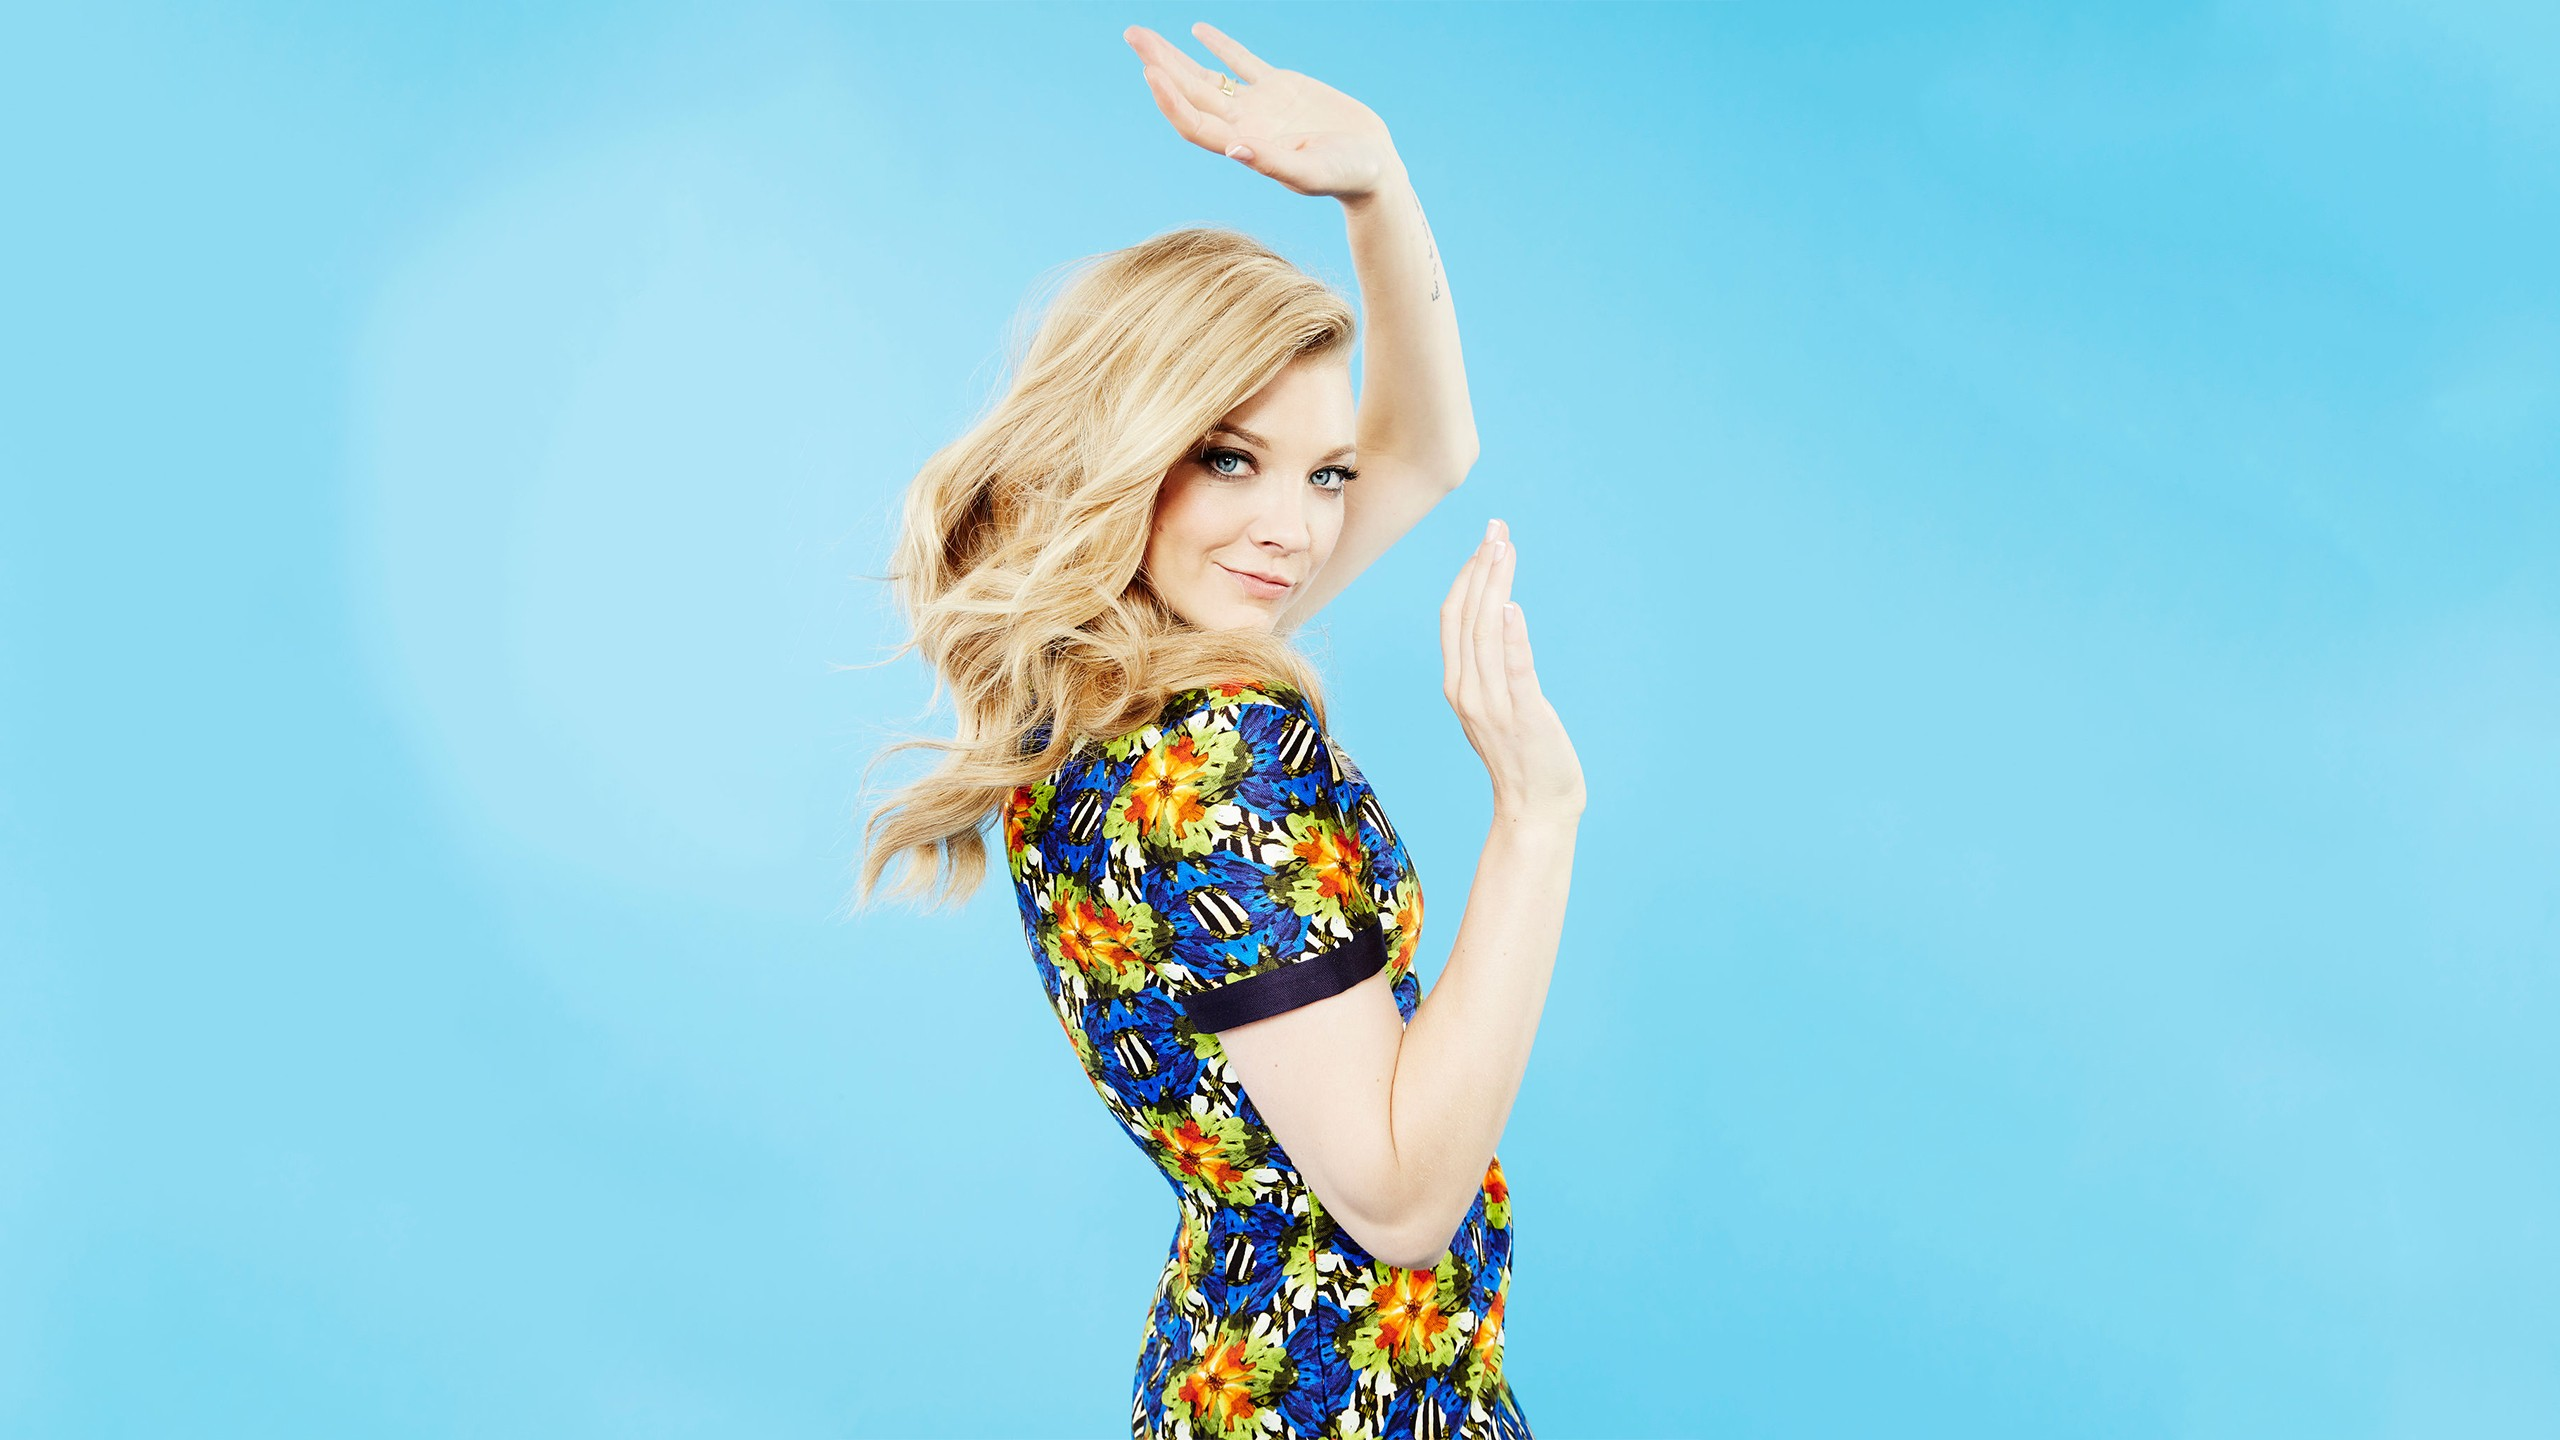 1600x900 Wallpapers Hd Cars Natalie Dormer 2017 Hd Wallpapers Hd Wallpapers Id 21938